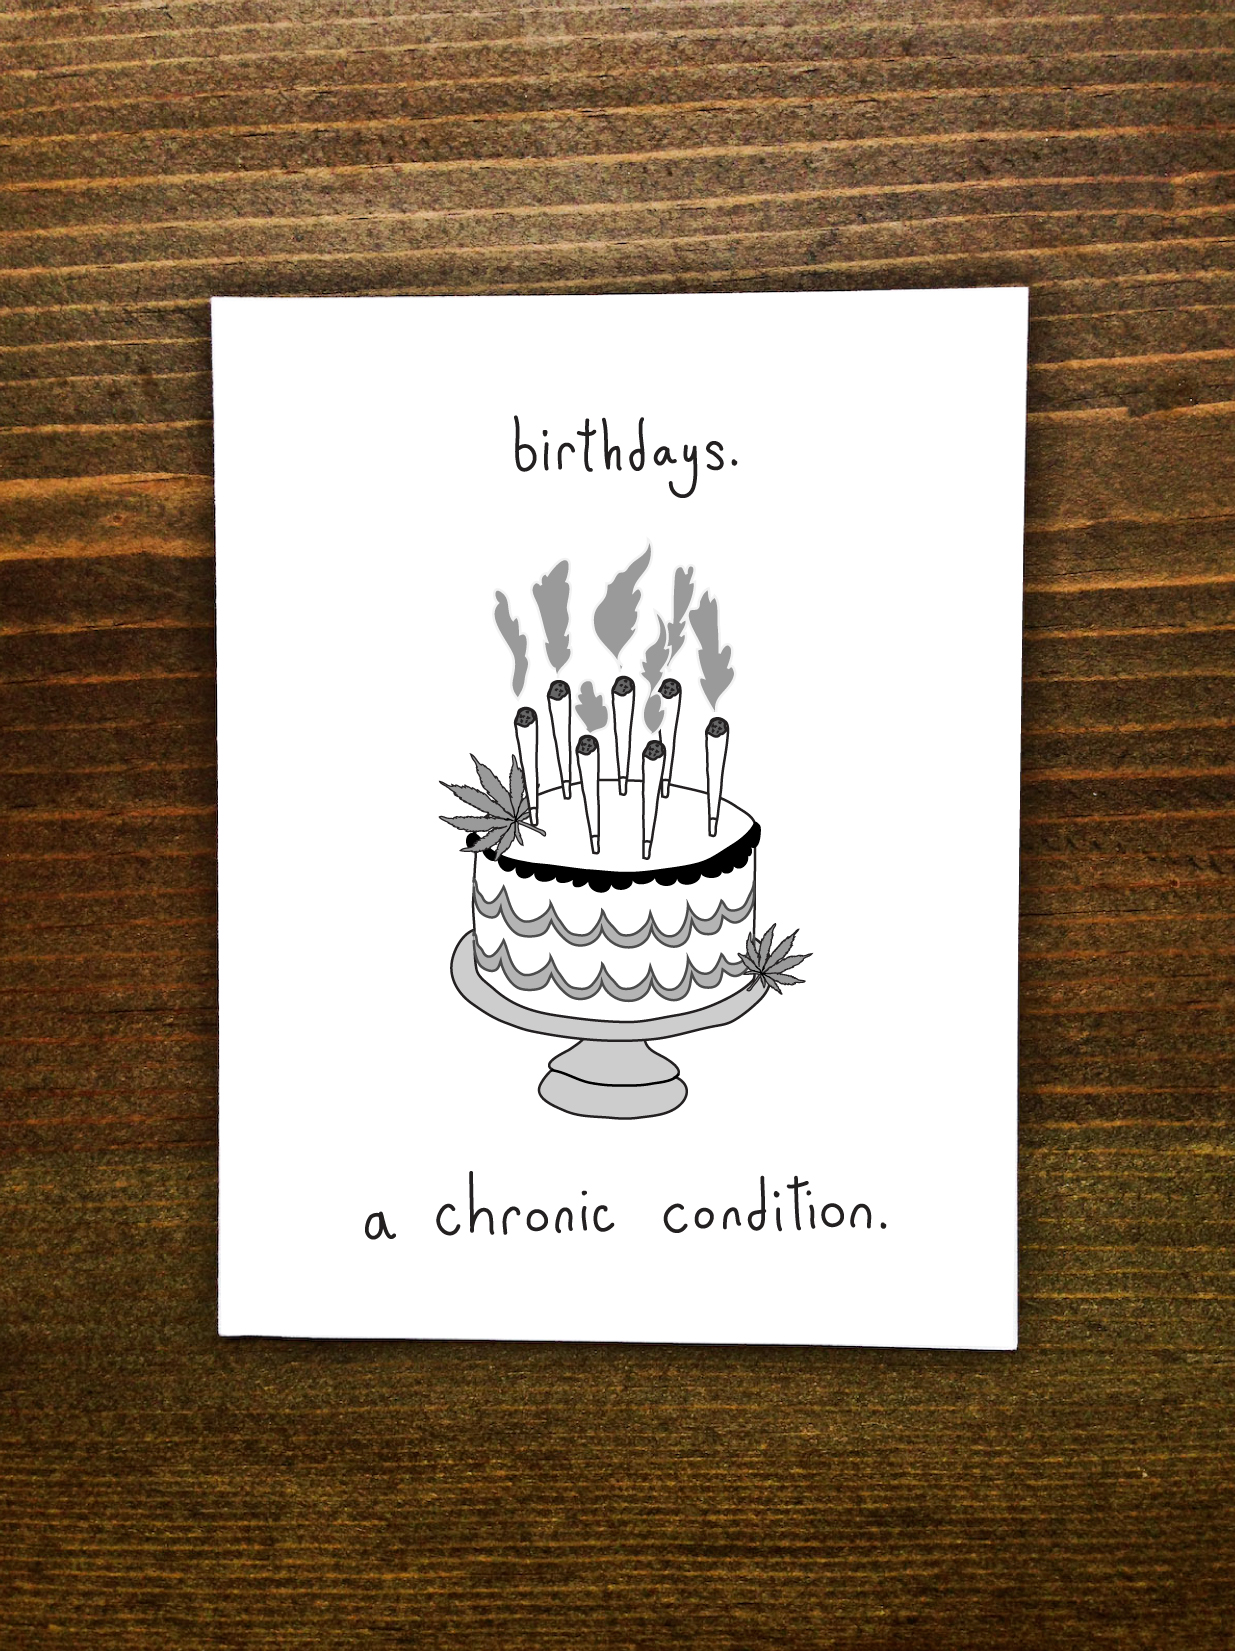 mrb126-birthdays-a-chronic-condition.jpg